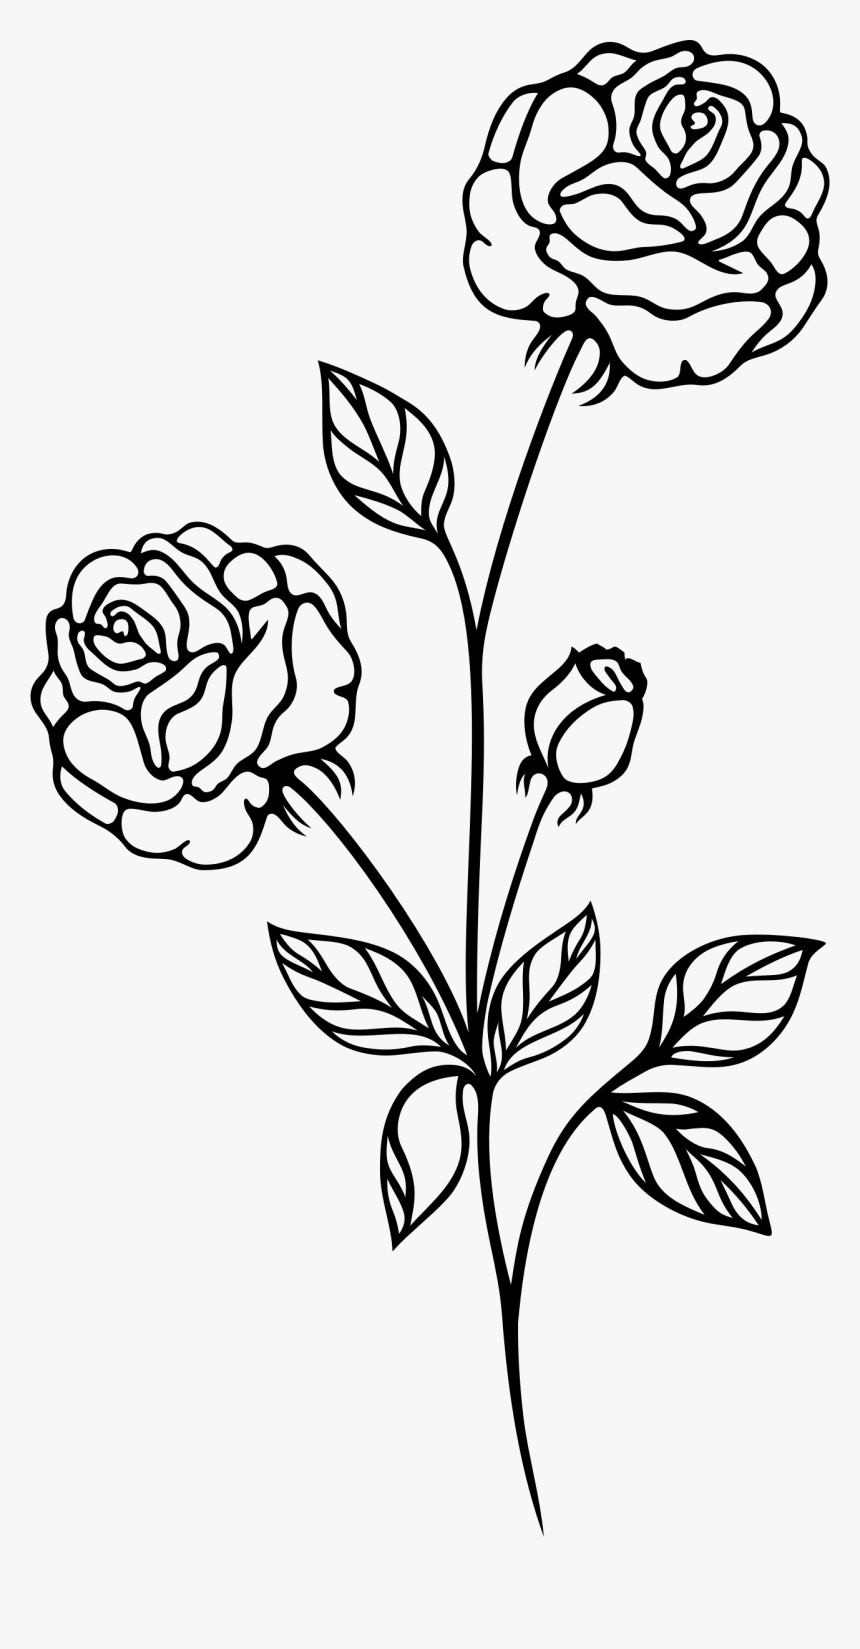 Rose Bush Clipart Plan.